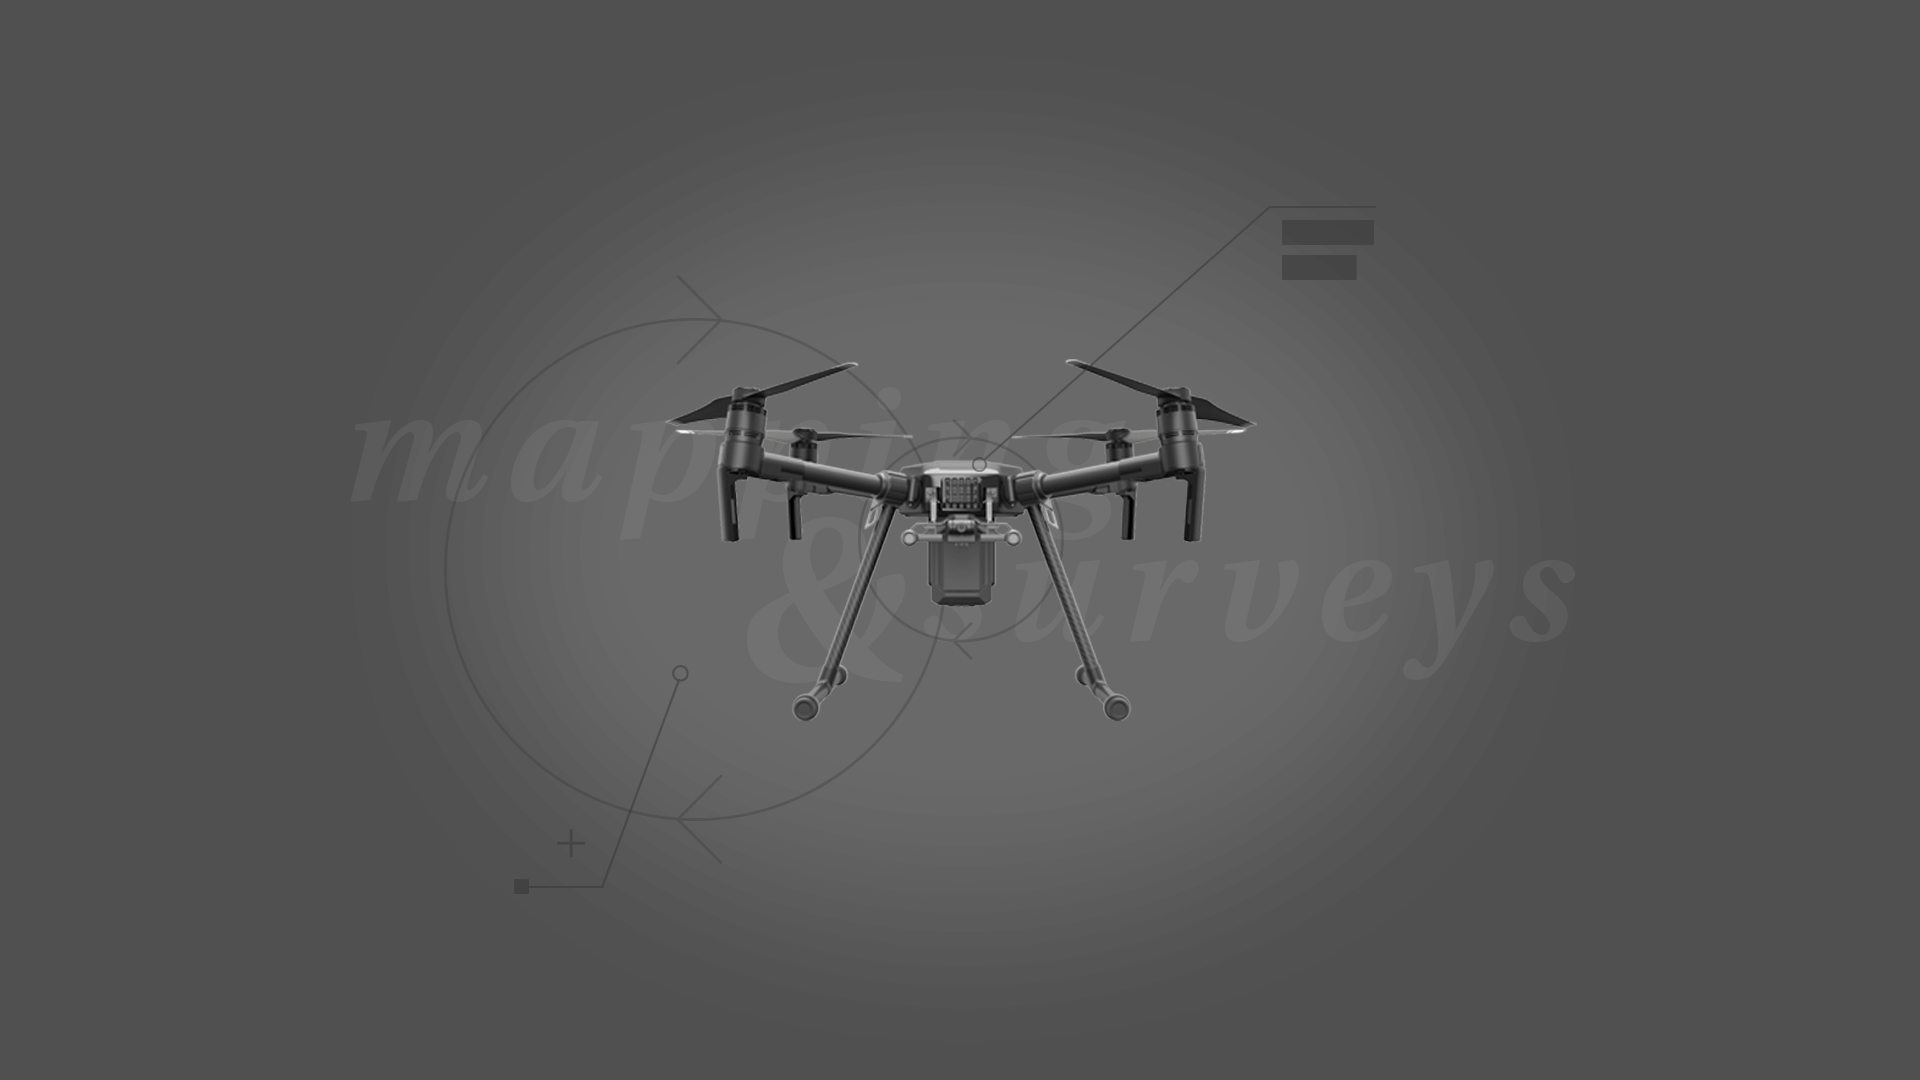 Our drone for Aerial Surveys, UAV Aerial Mapping and Aerial Photography services